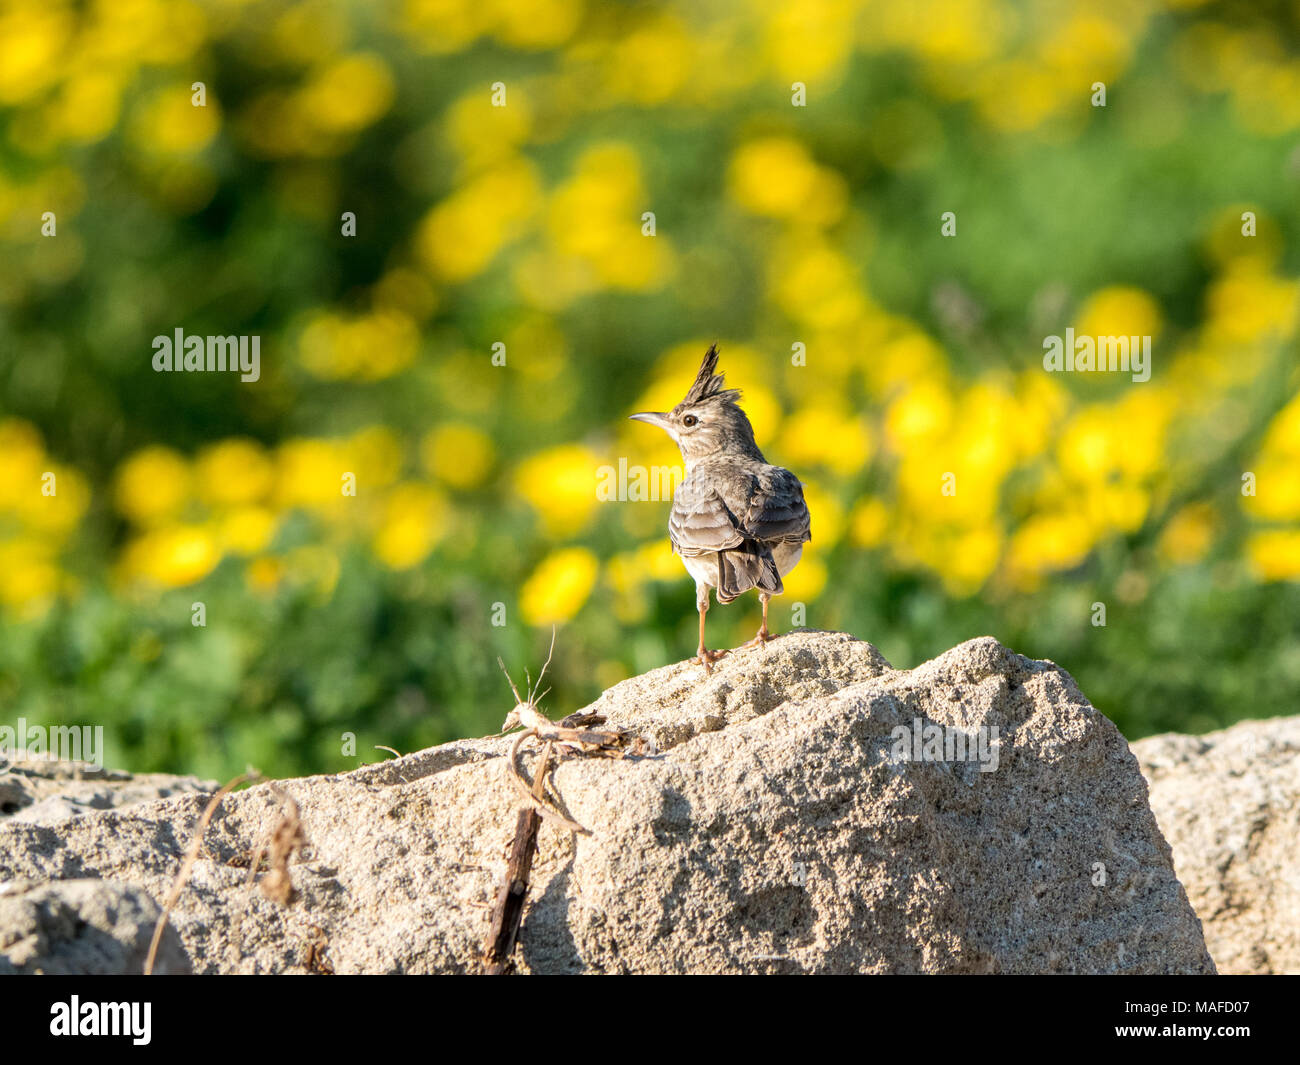 Crested Lark (Galerida cristata) perched on a rock against a backdrop of yellow wildflowers in Cyprus Stock Photo